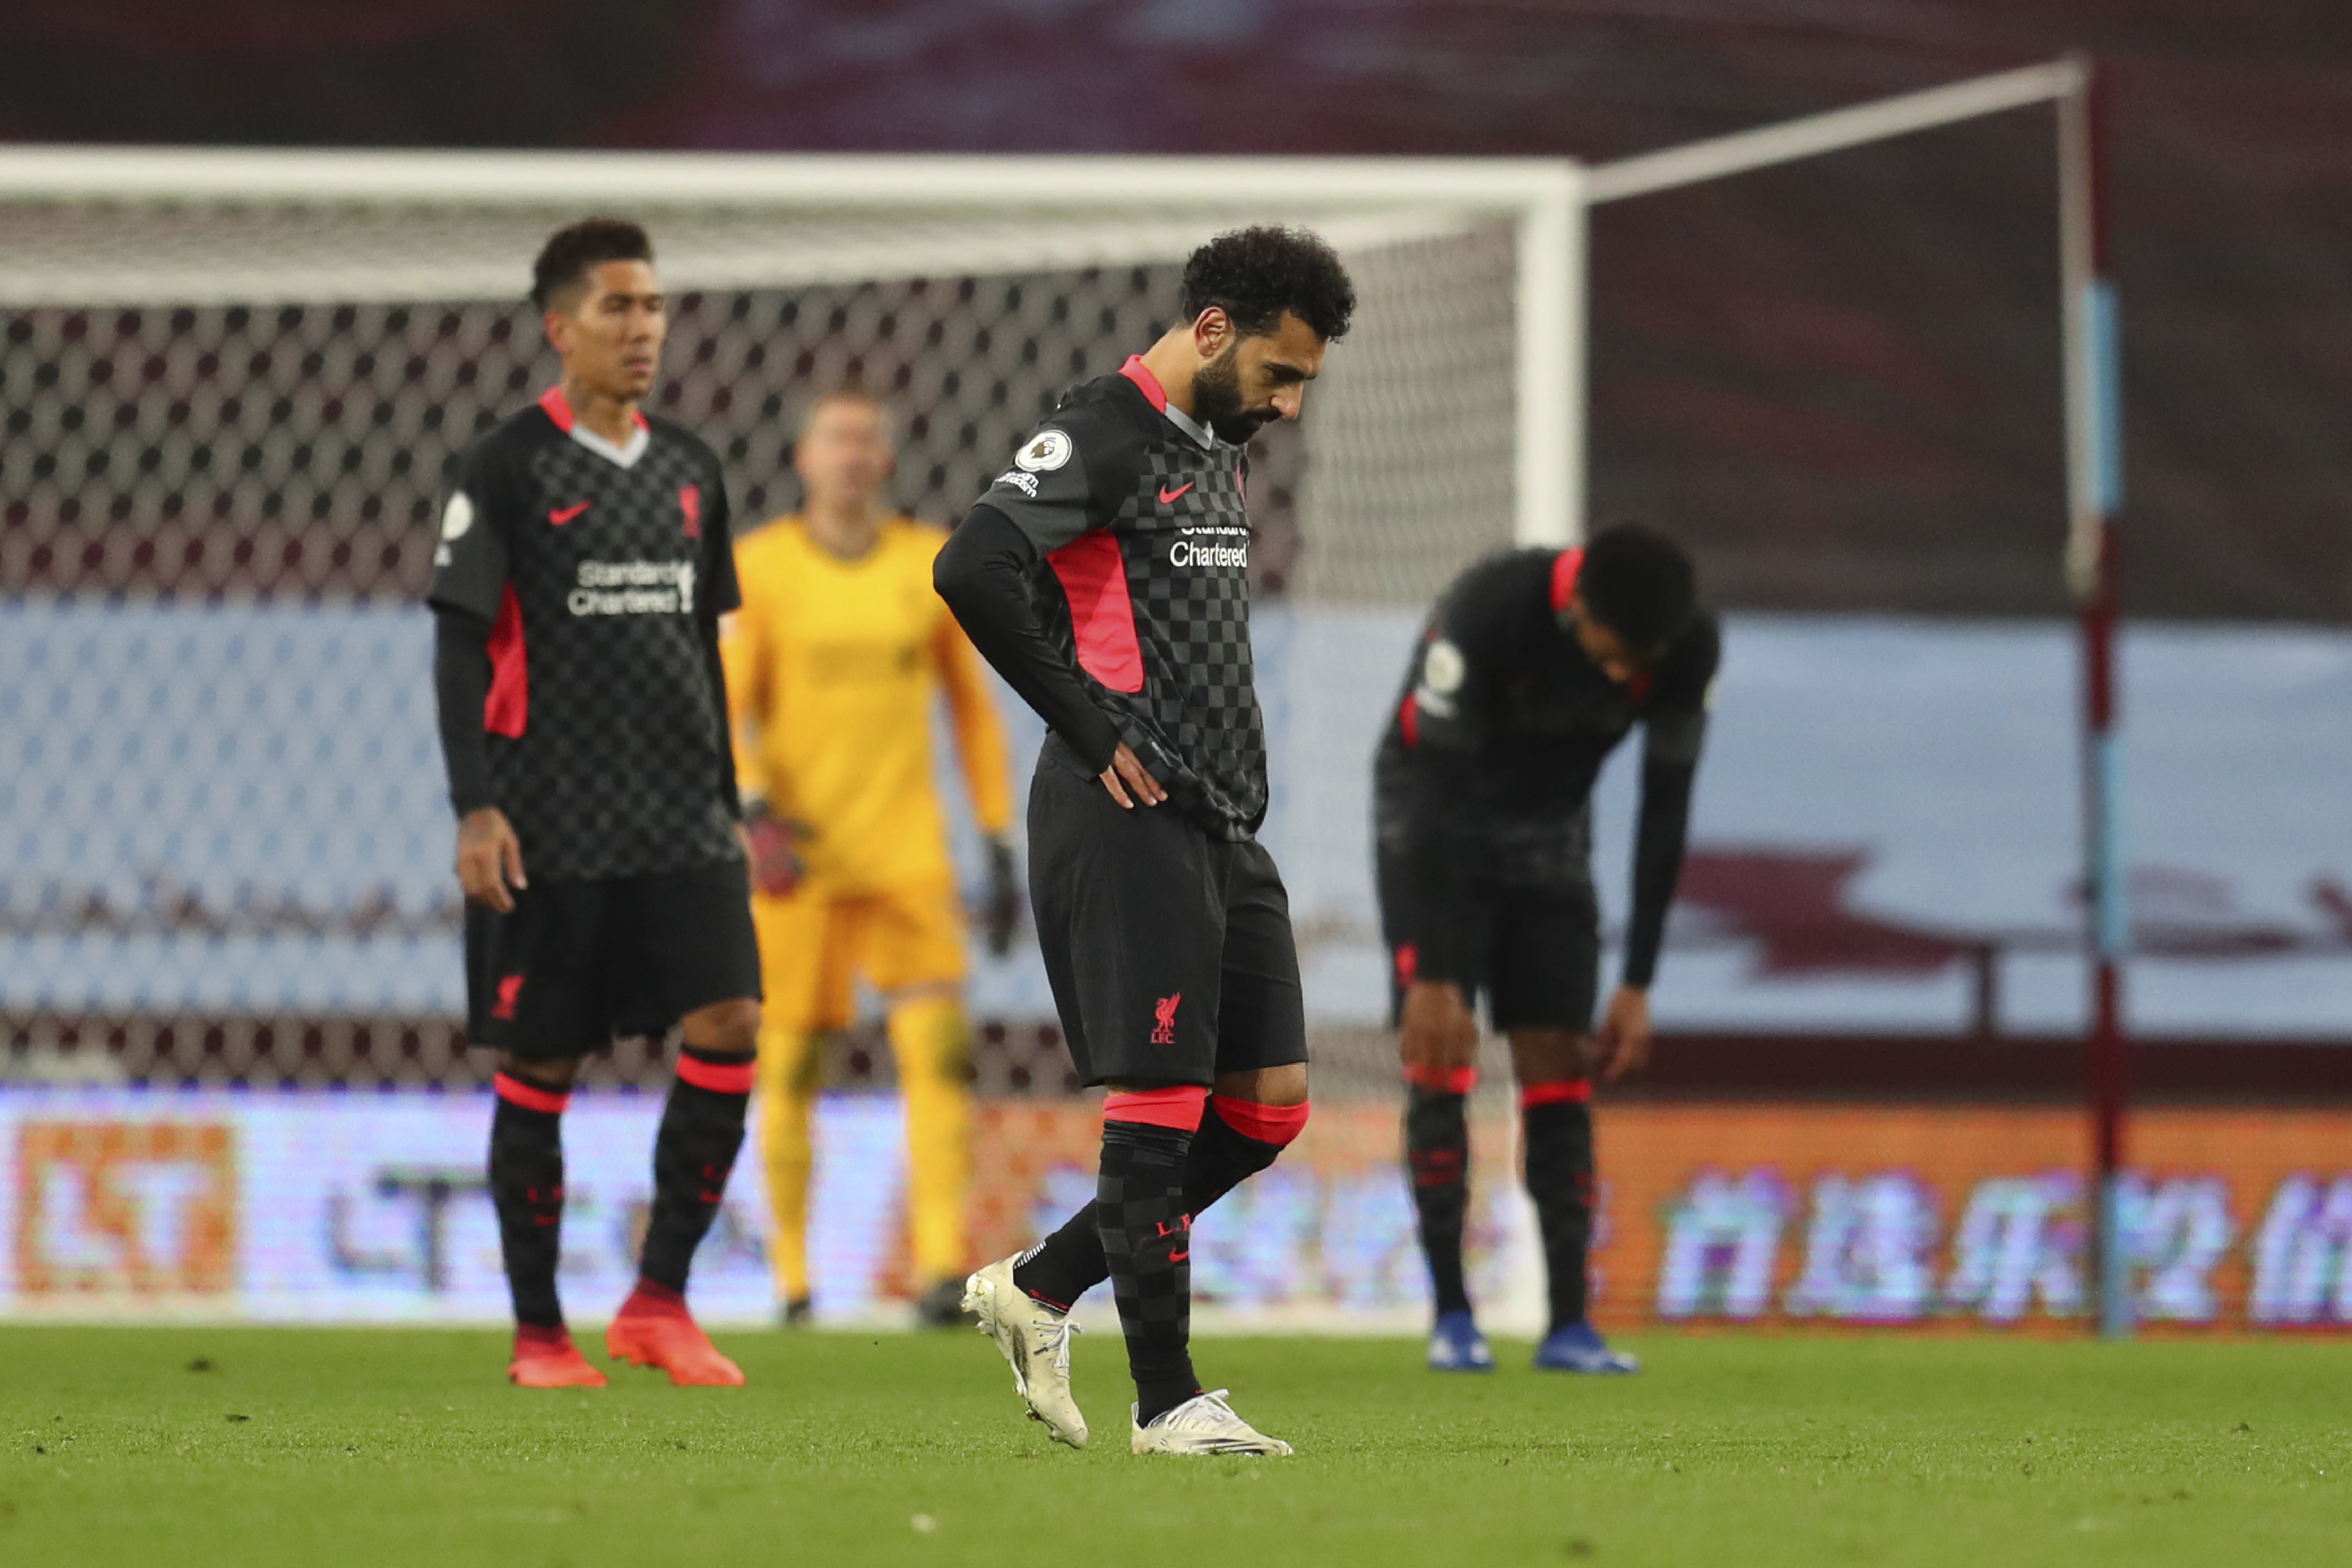 Liverpool Embarrassed In 7 2 Loss To Aston Villa In Epl Wvns